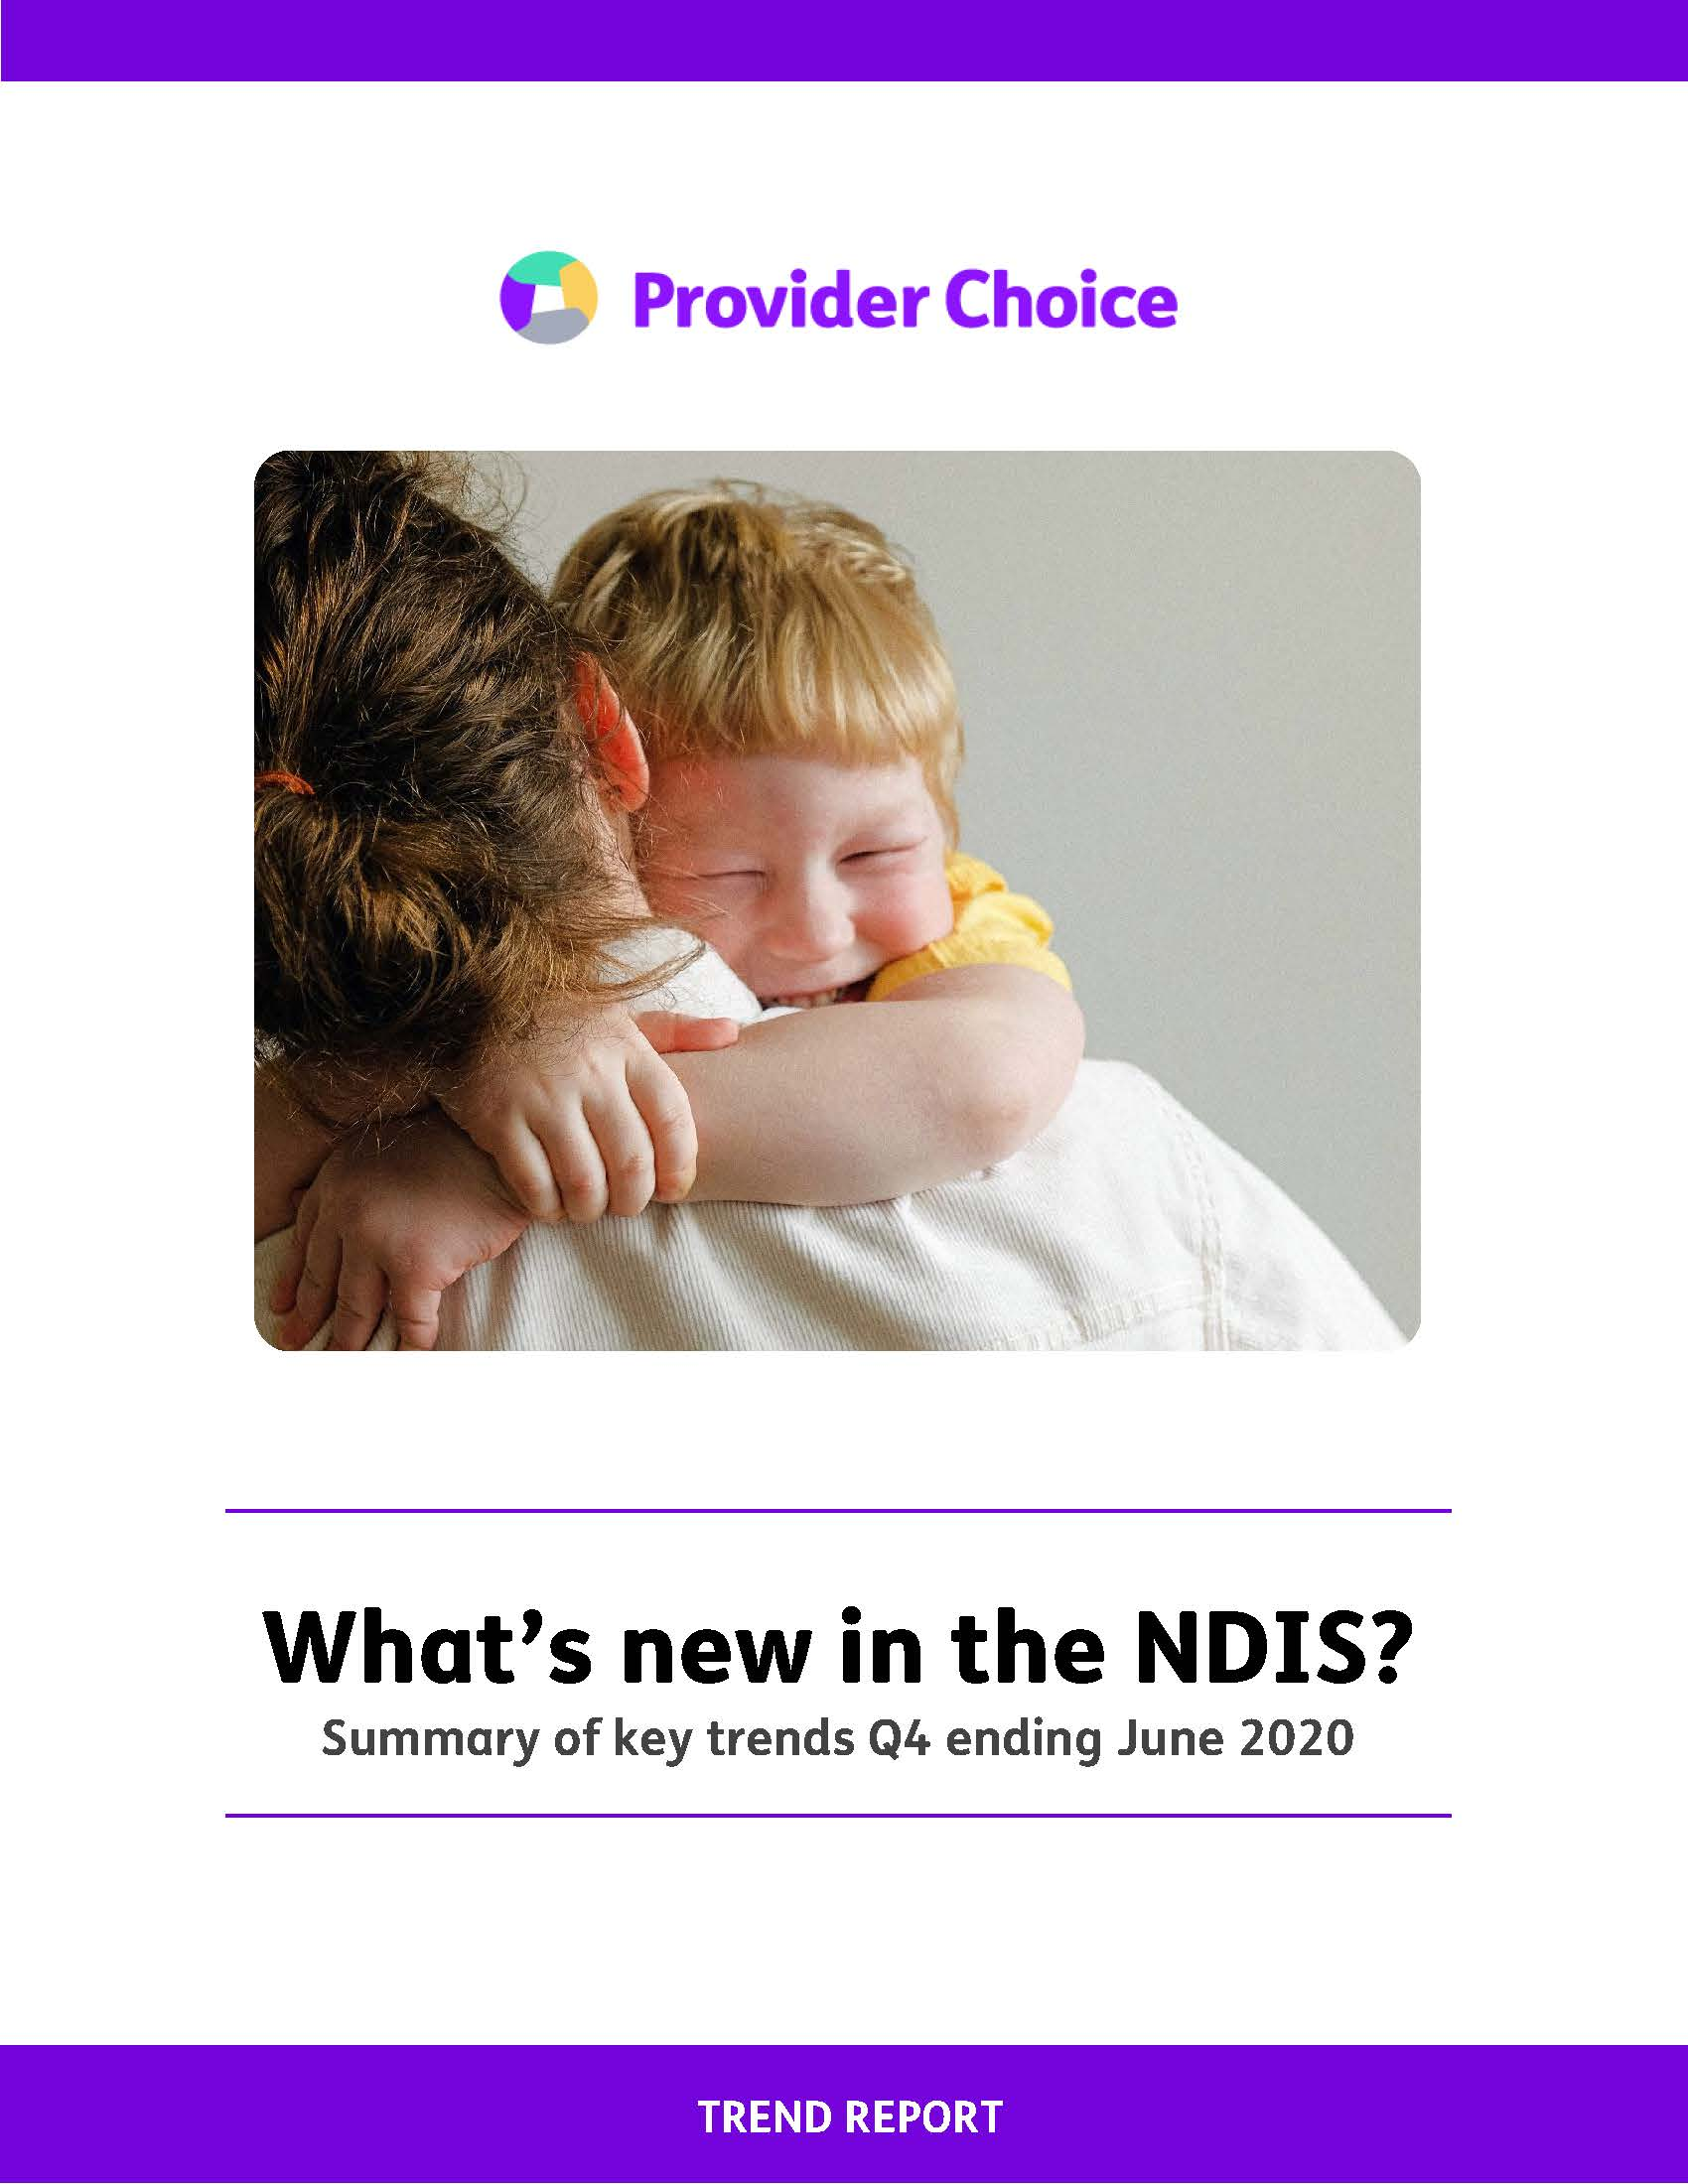 What's new in the NDIS? A quick summary of trends April-June 2020